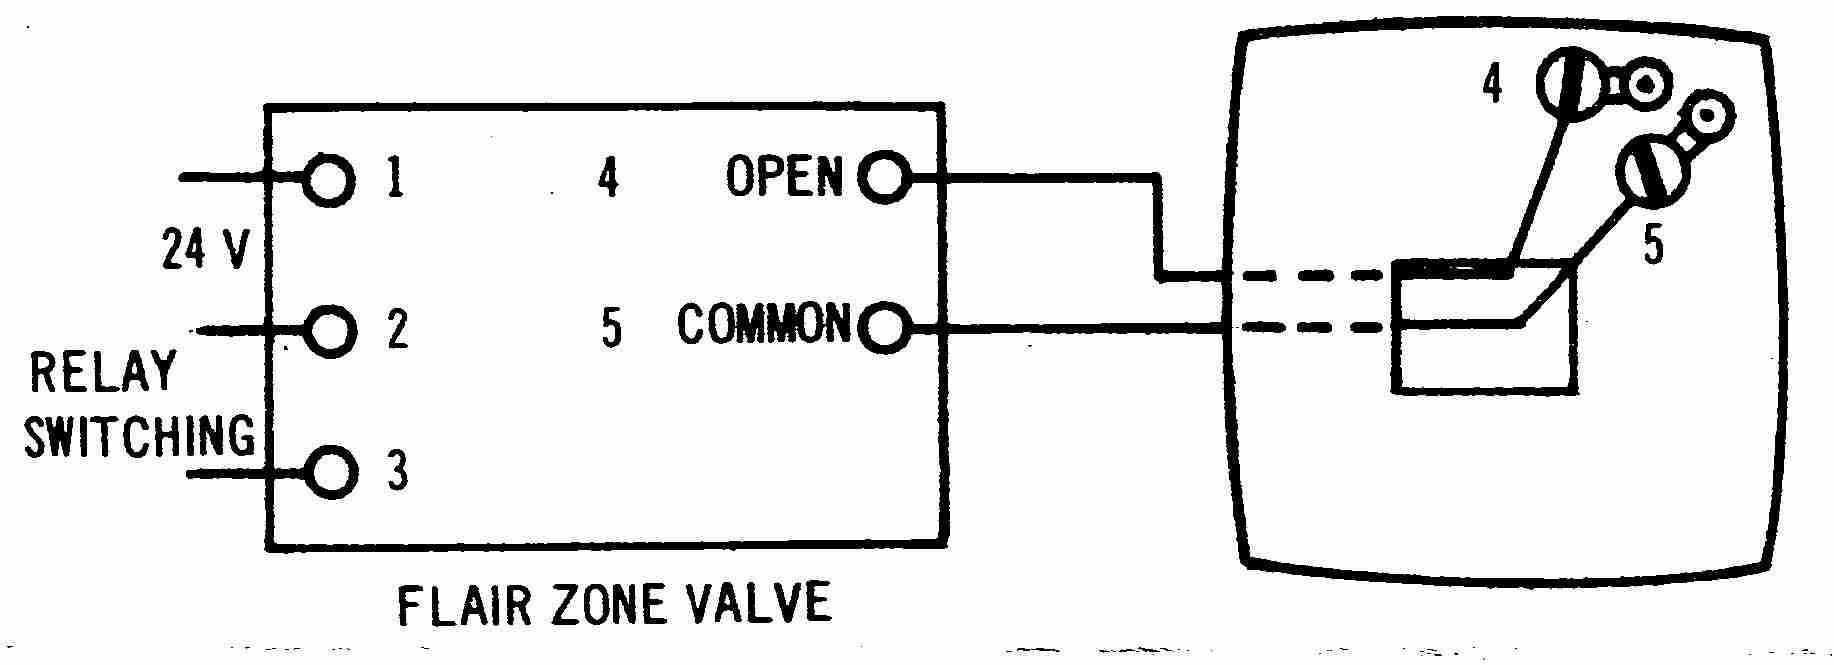 Flair2w_001_DJFc1 room thermostat wiring diagrams for hvac systems Home Electrical Wiring Diagrams at bayanpartner.co